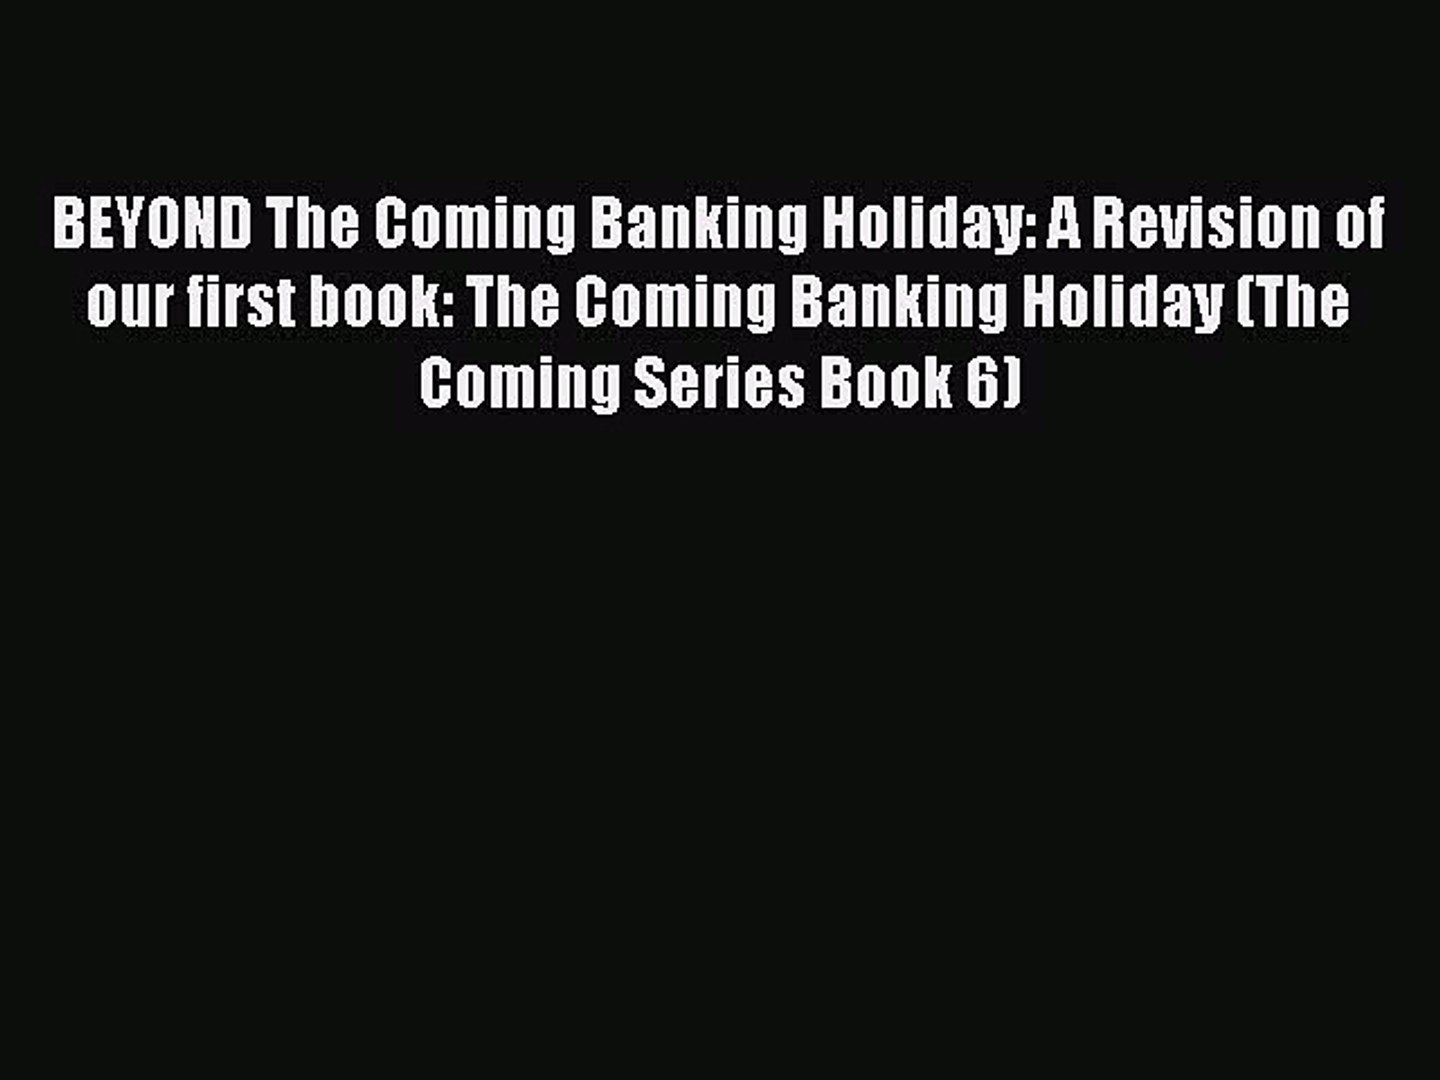 Read BEYOND The Coming Banking Holiday: A Revision of our first book: The Coming Banking Holiday